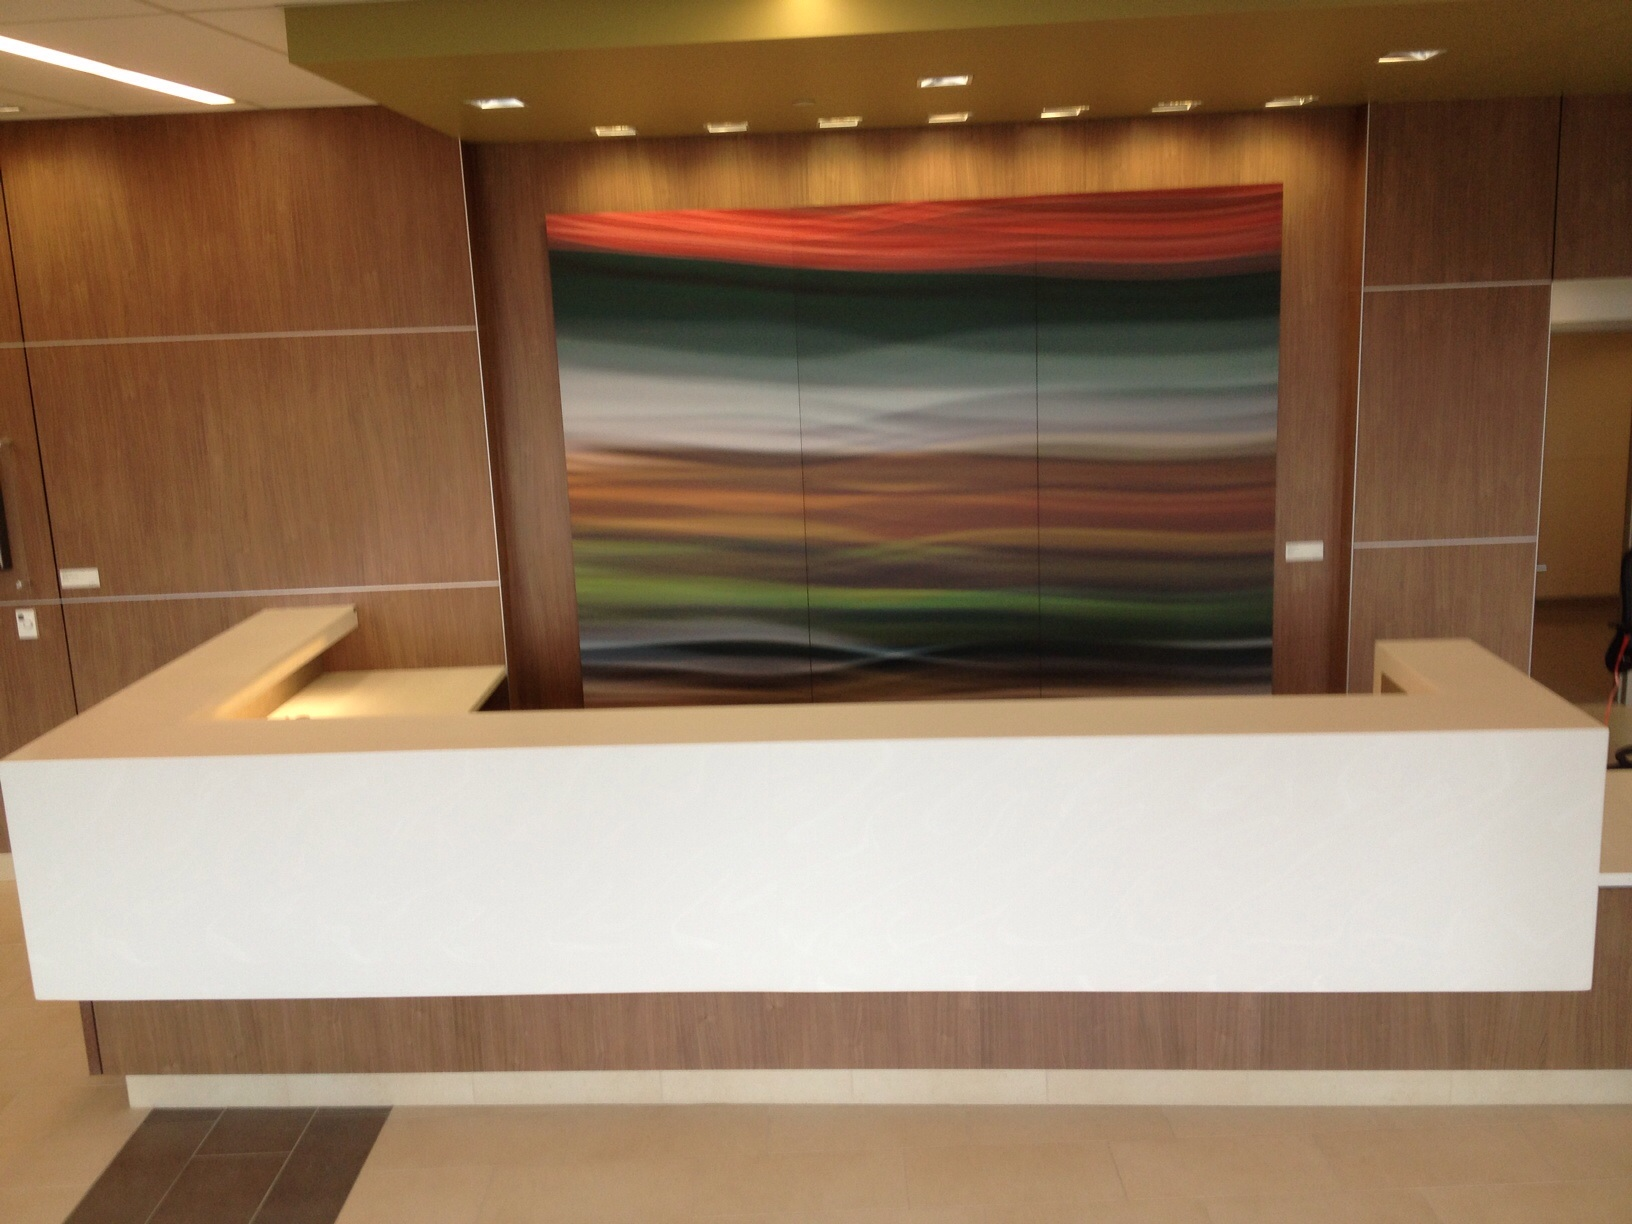 University Healthcare System Wall Commission